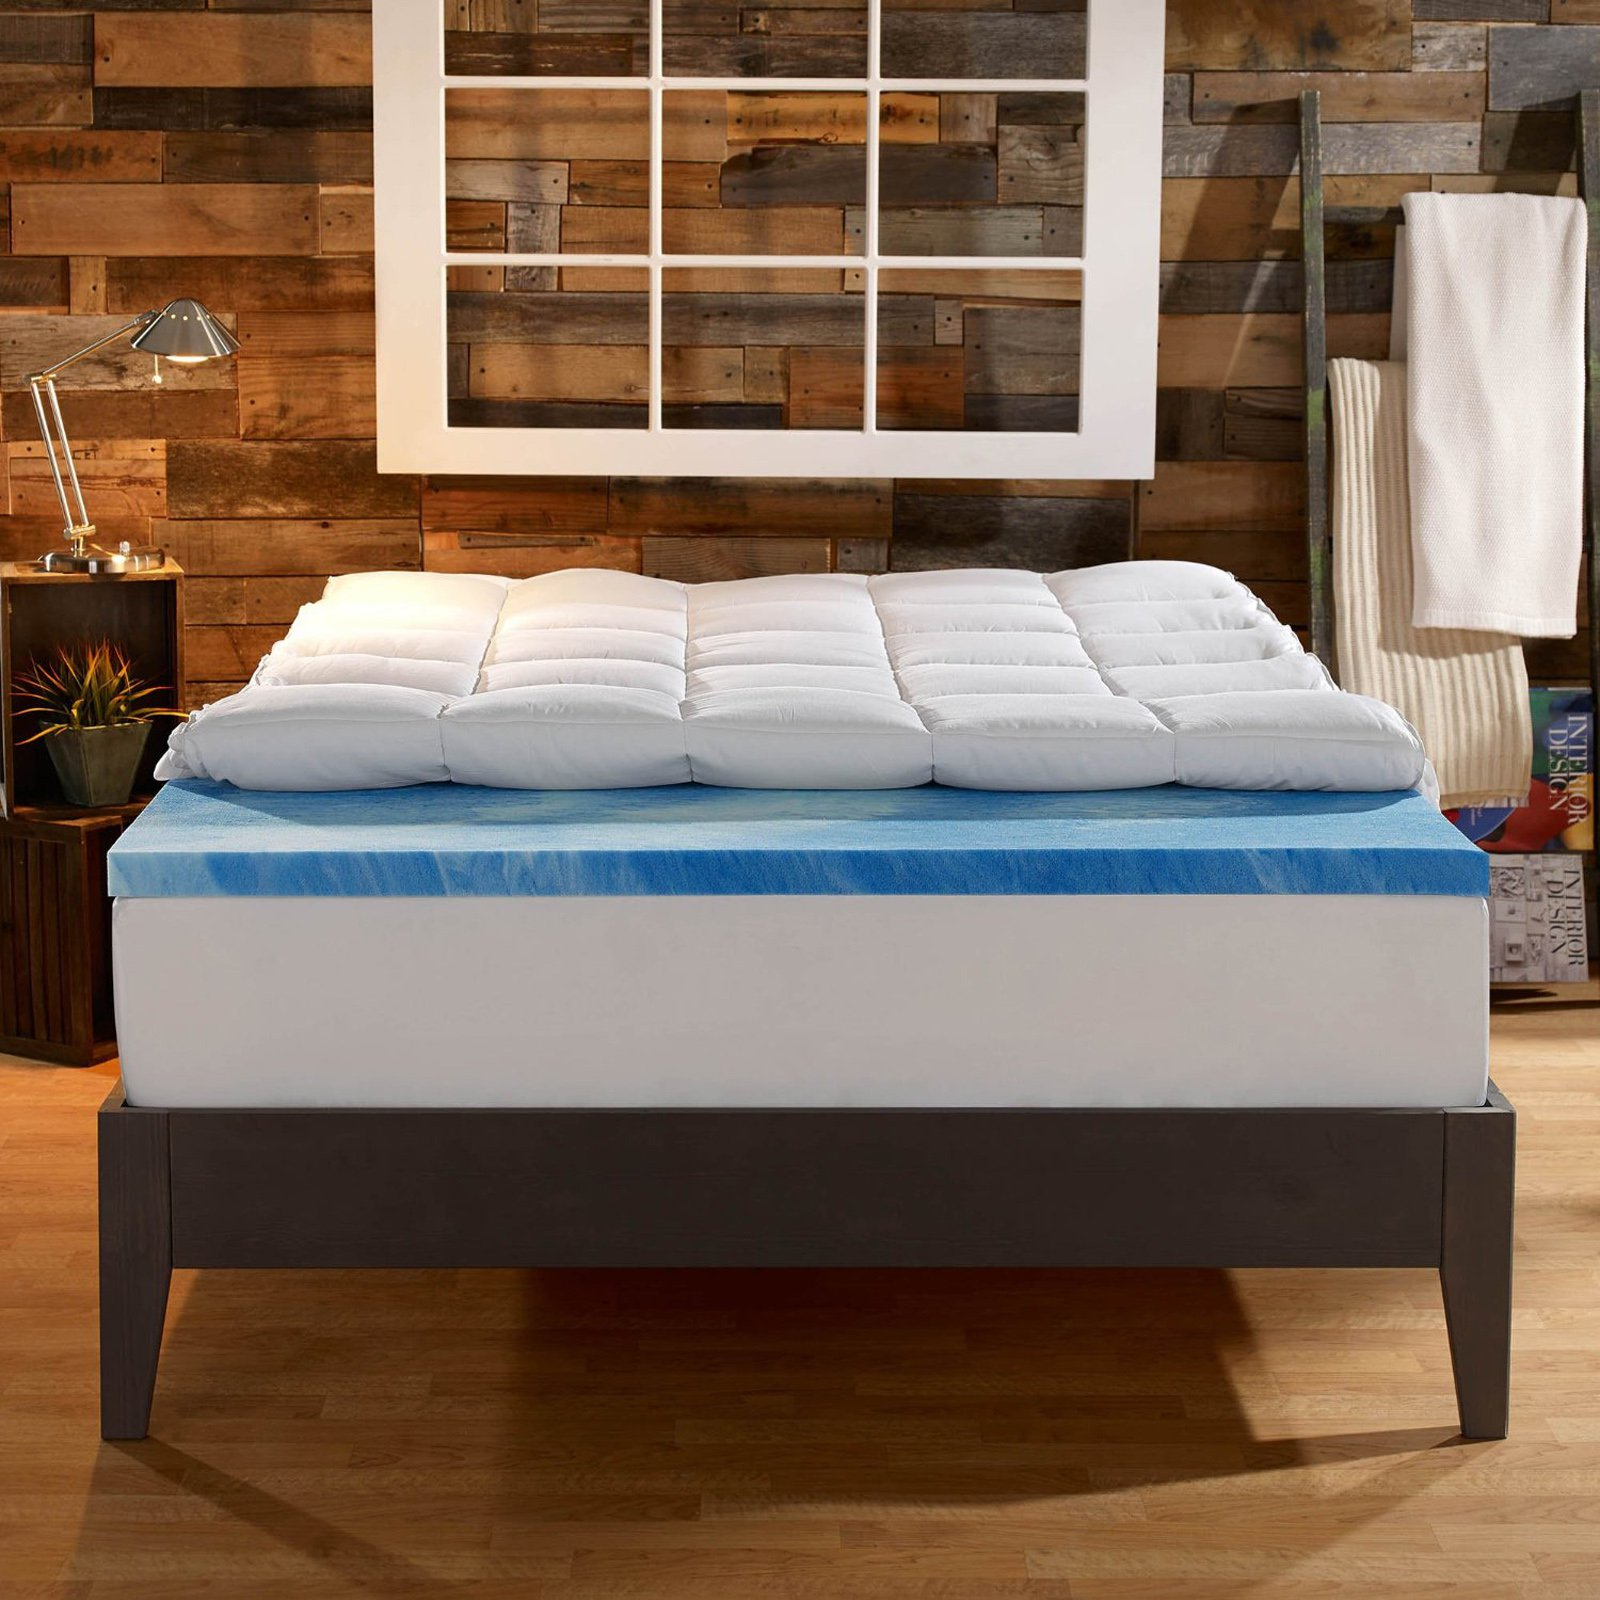 Sleep Innovations 4 in. Dual Layer Mattress Topper - Gel ...